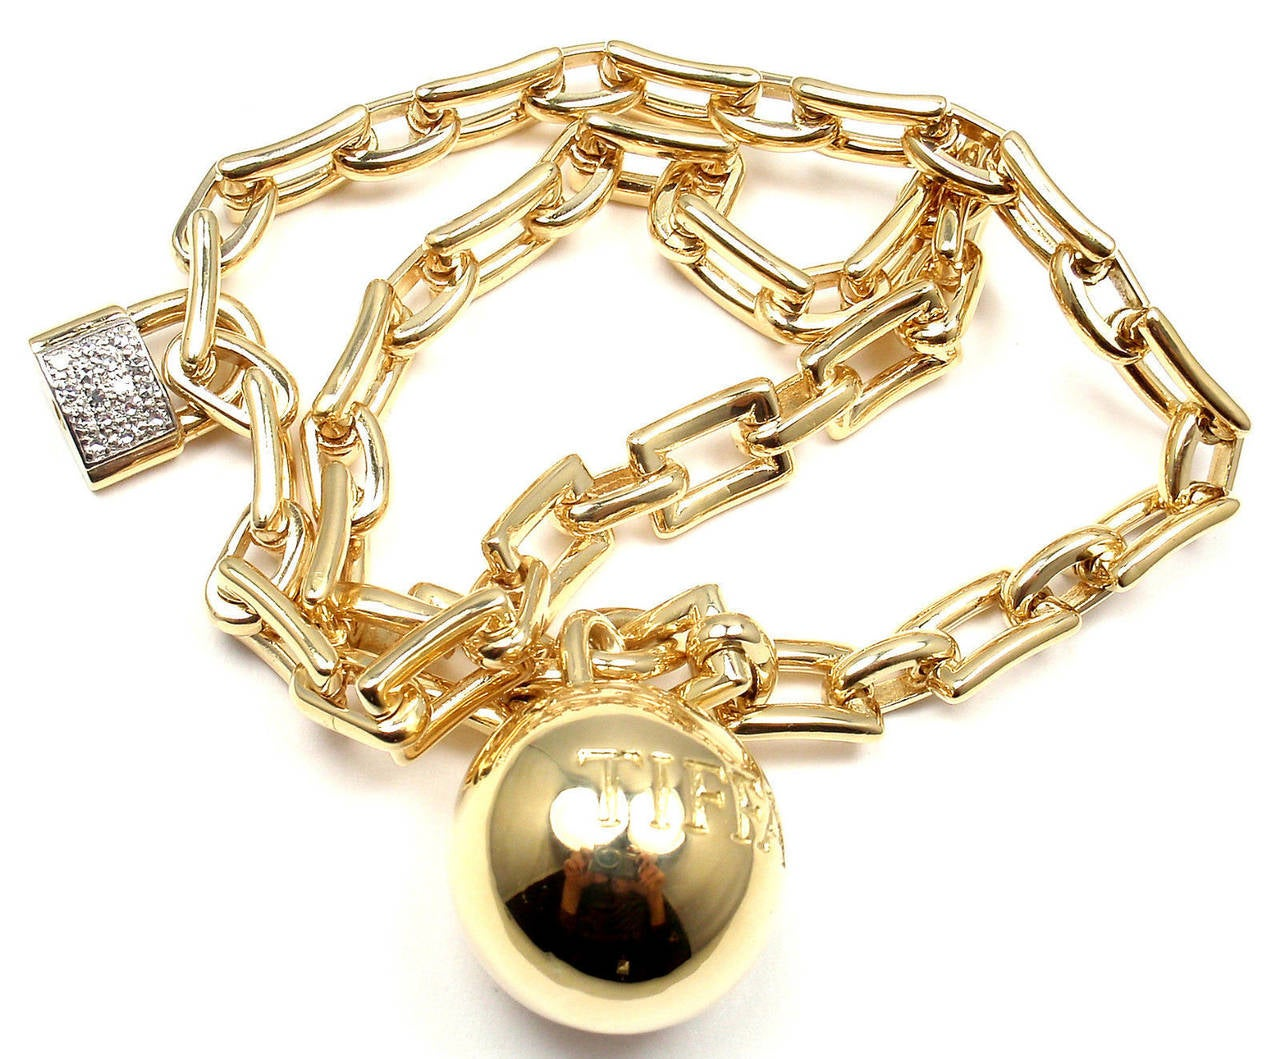 18k Yellow Gold Diamond Link Ball & Chain Bracelet by ]